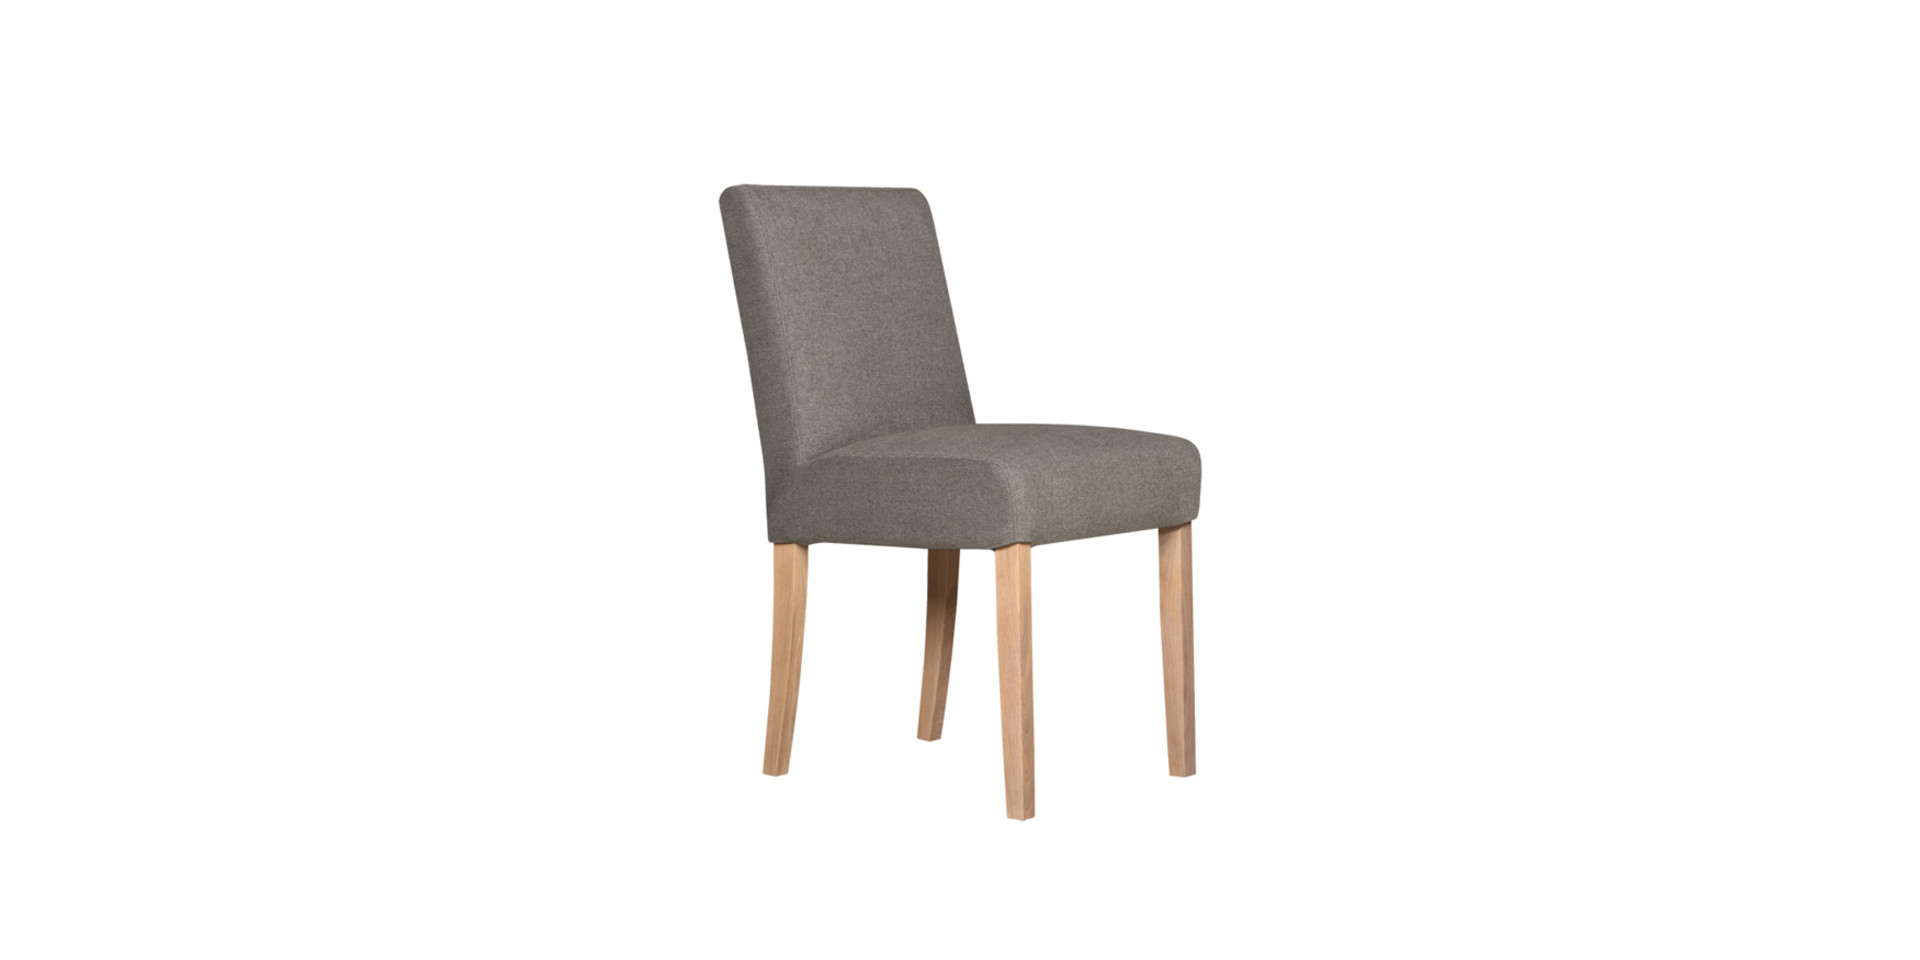 VIGGO_chair_dover3_grey_beige_2